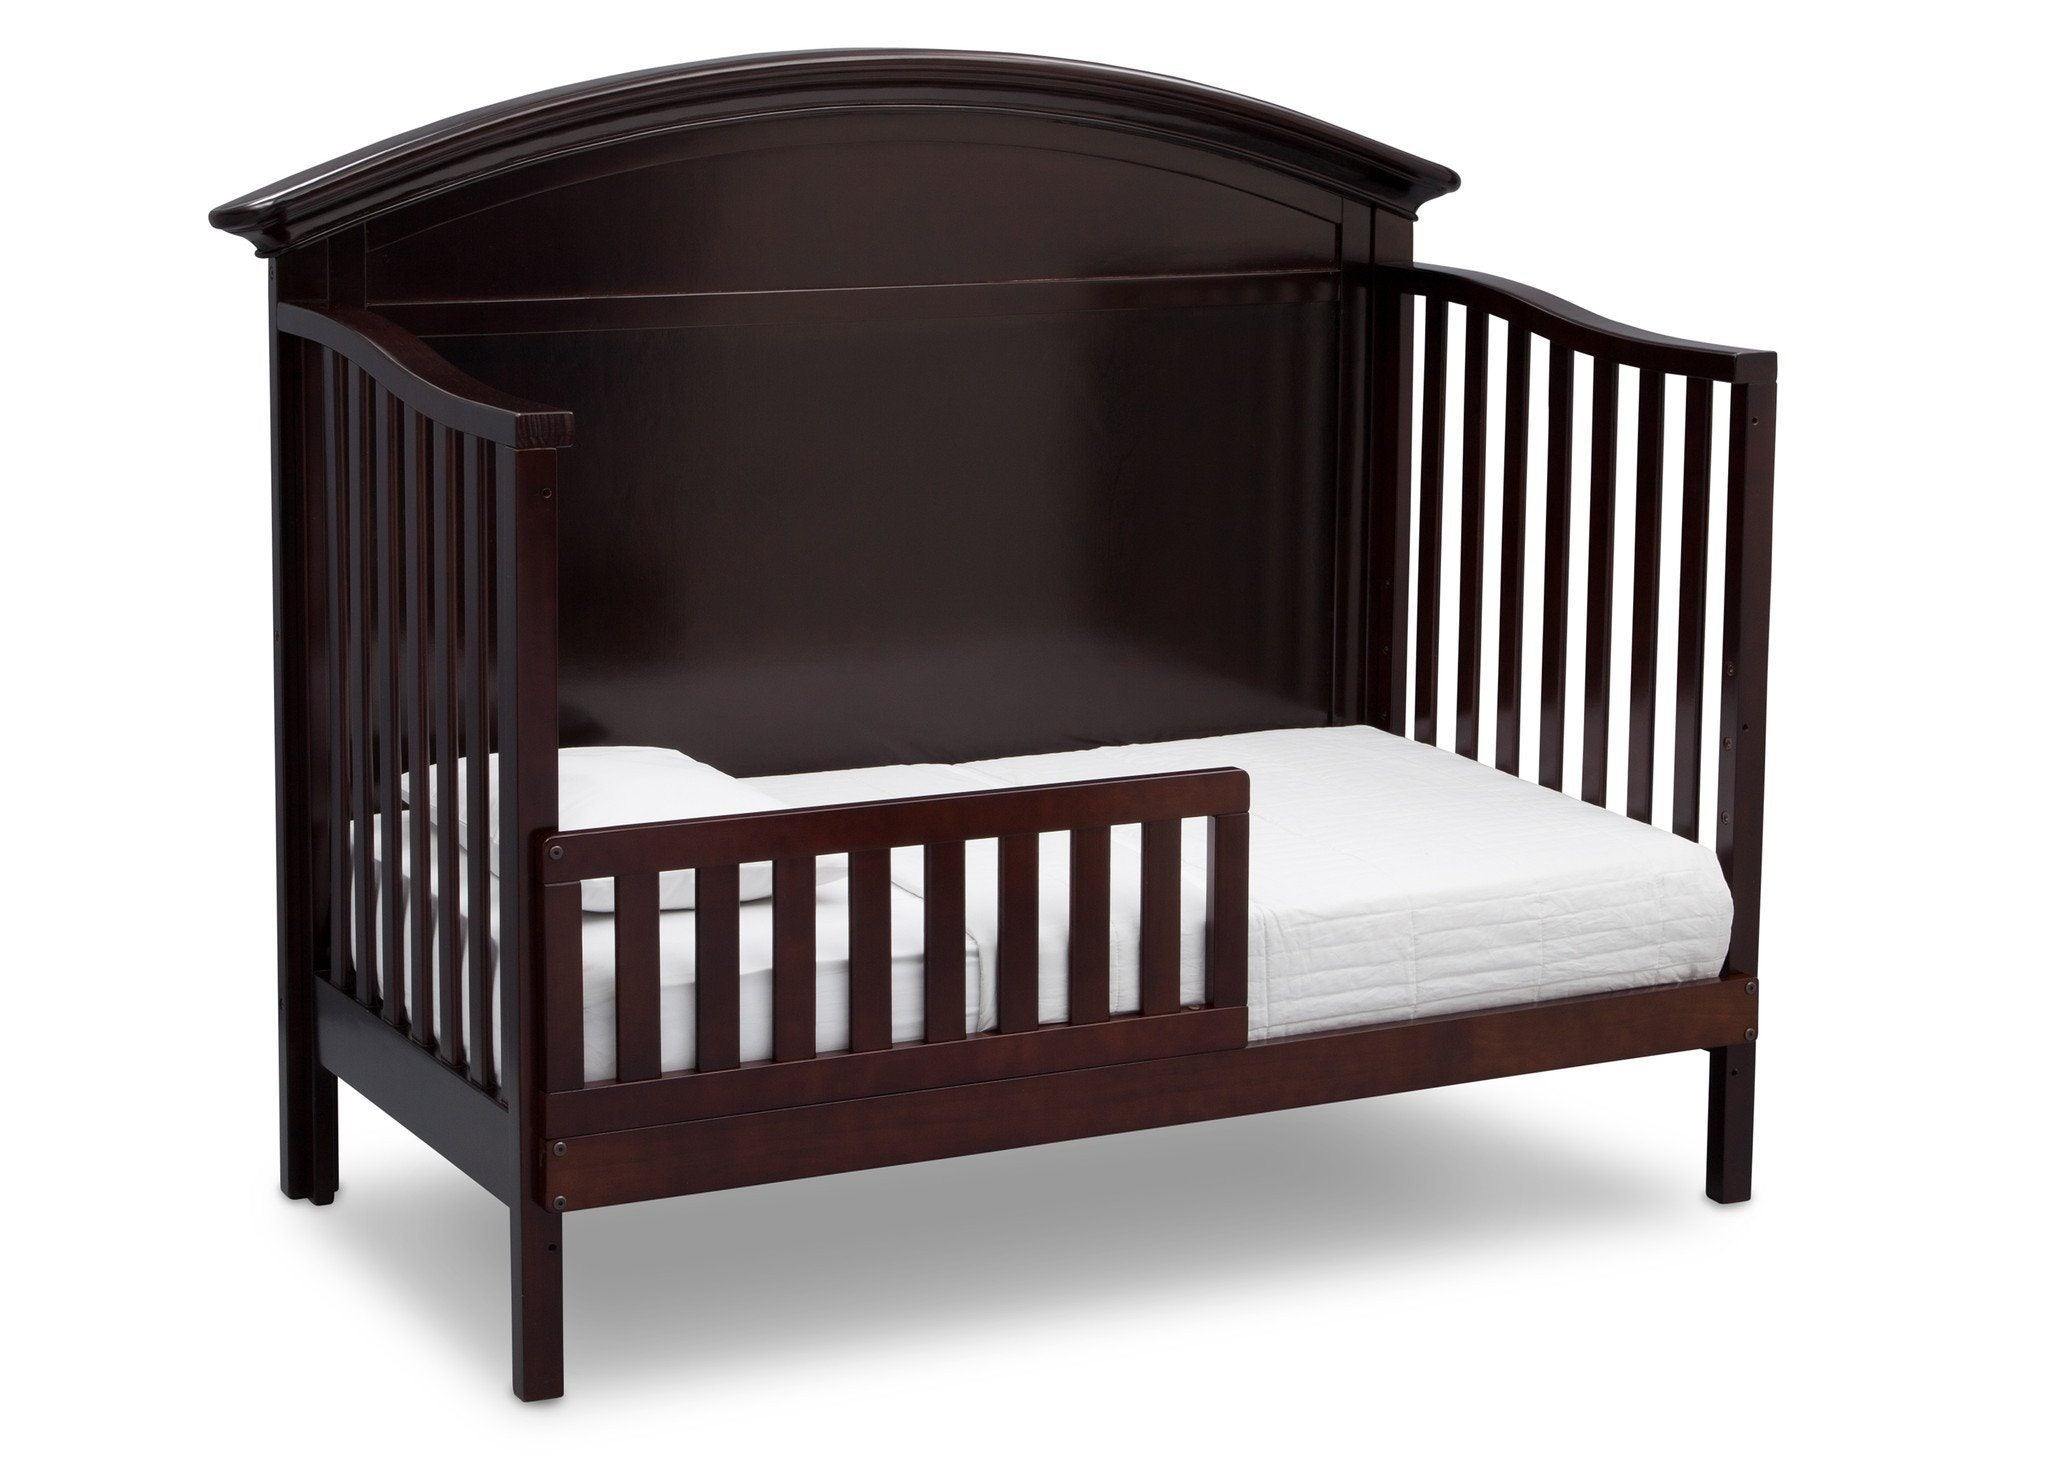 Serta Dark Chocolate (207) Adelaide 4-in-1 Crib, Side View with Toddler Bed Conversion c5c